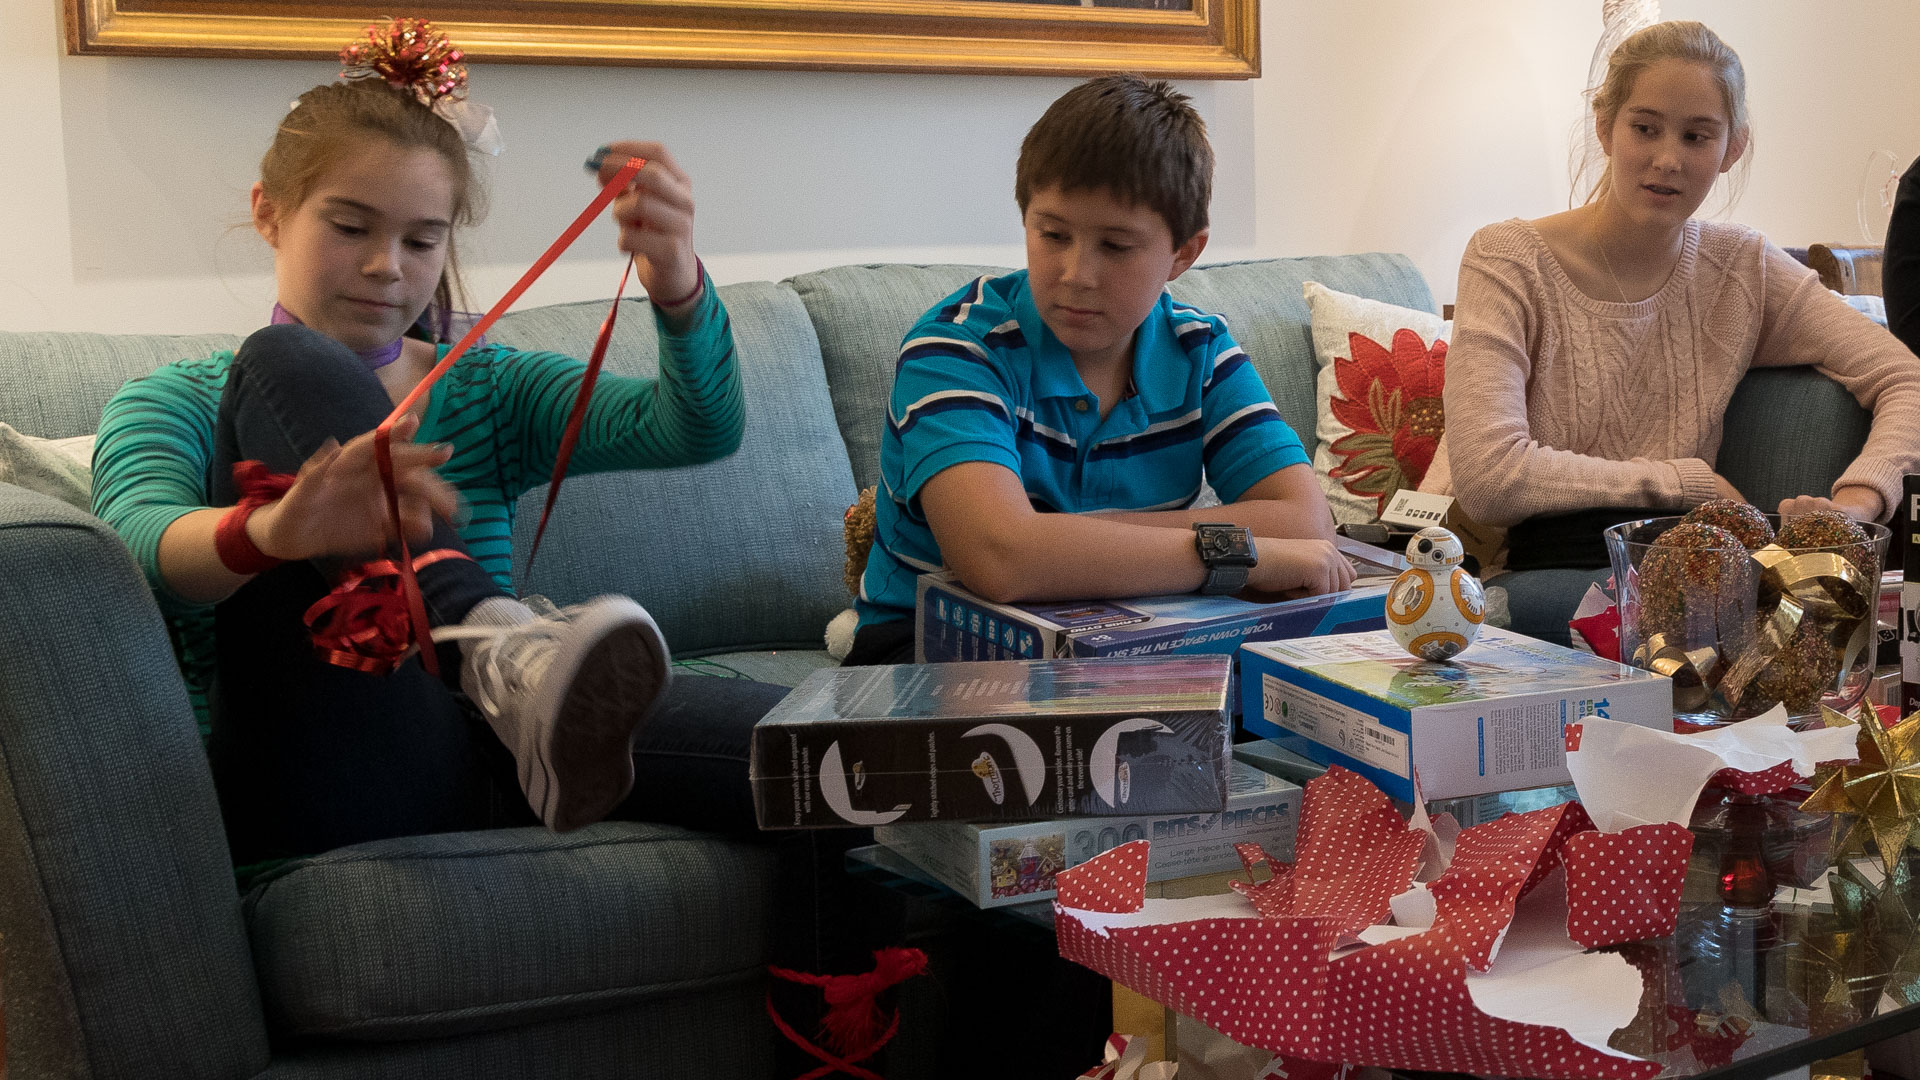 Photographing lively images on Christmas morning | Photofocus